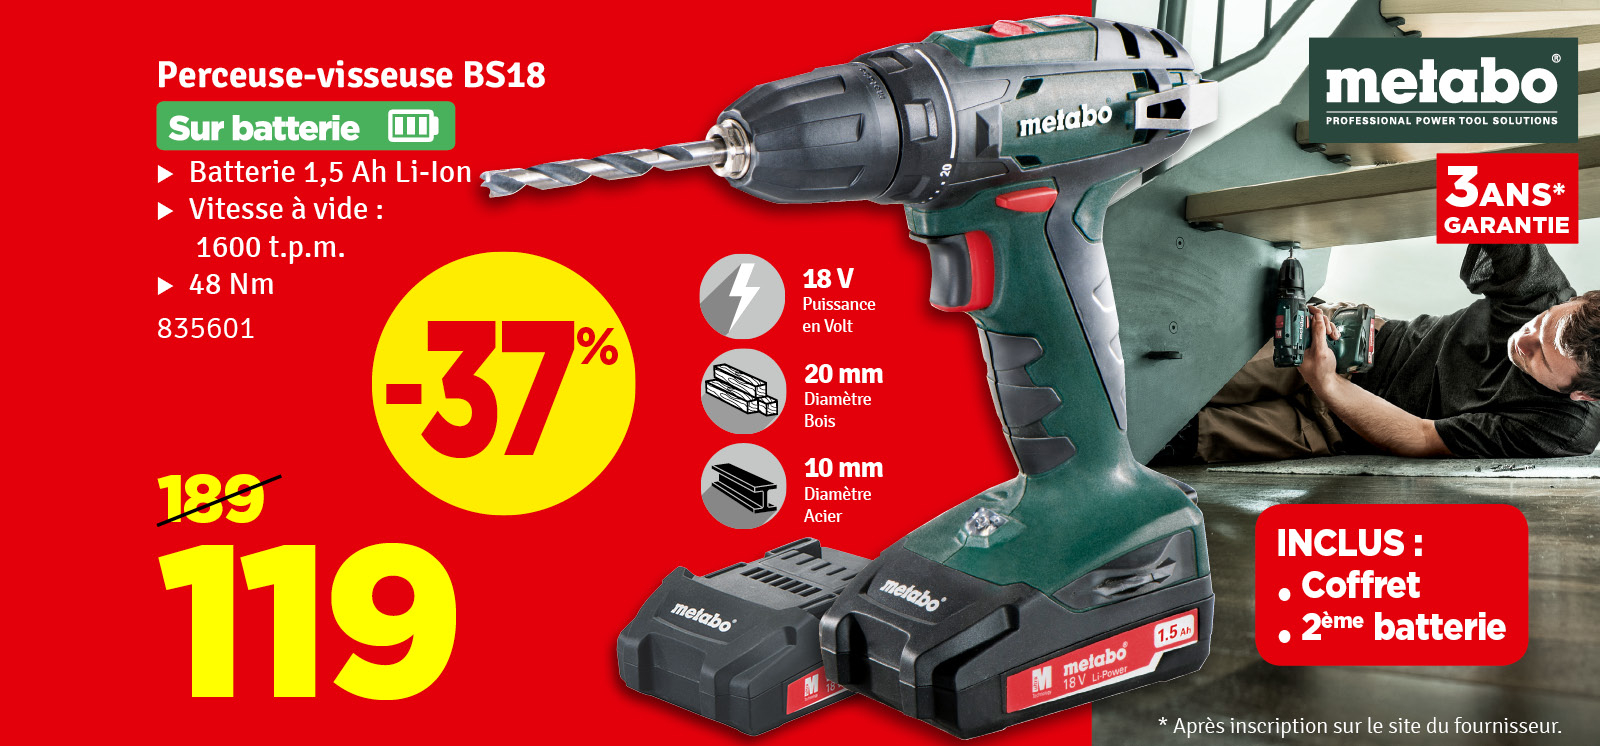 Promo - Perceuse visseuse BS18 18 v 2 x 1,5 Ah METABO